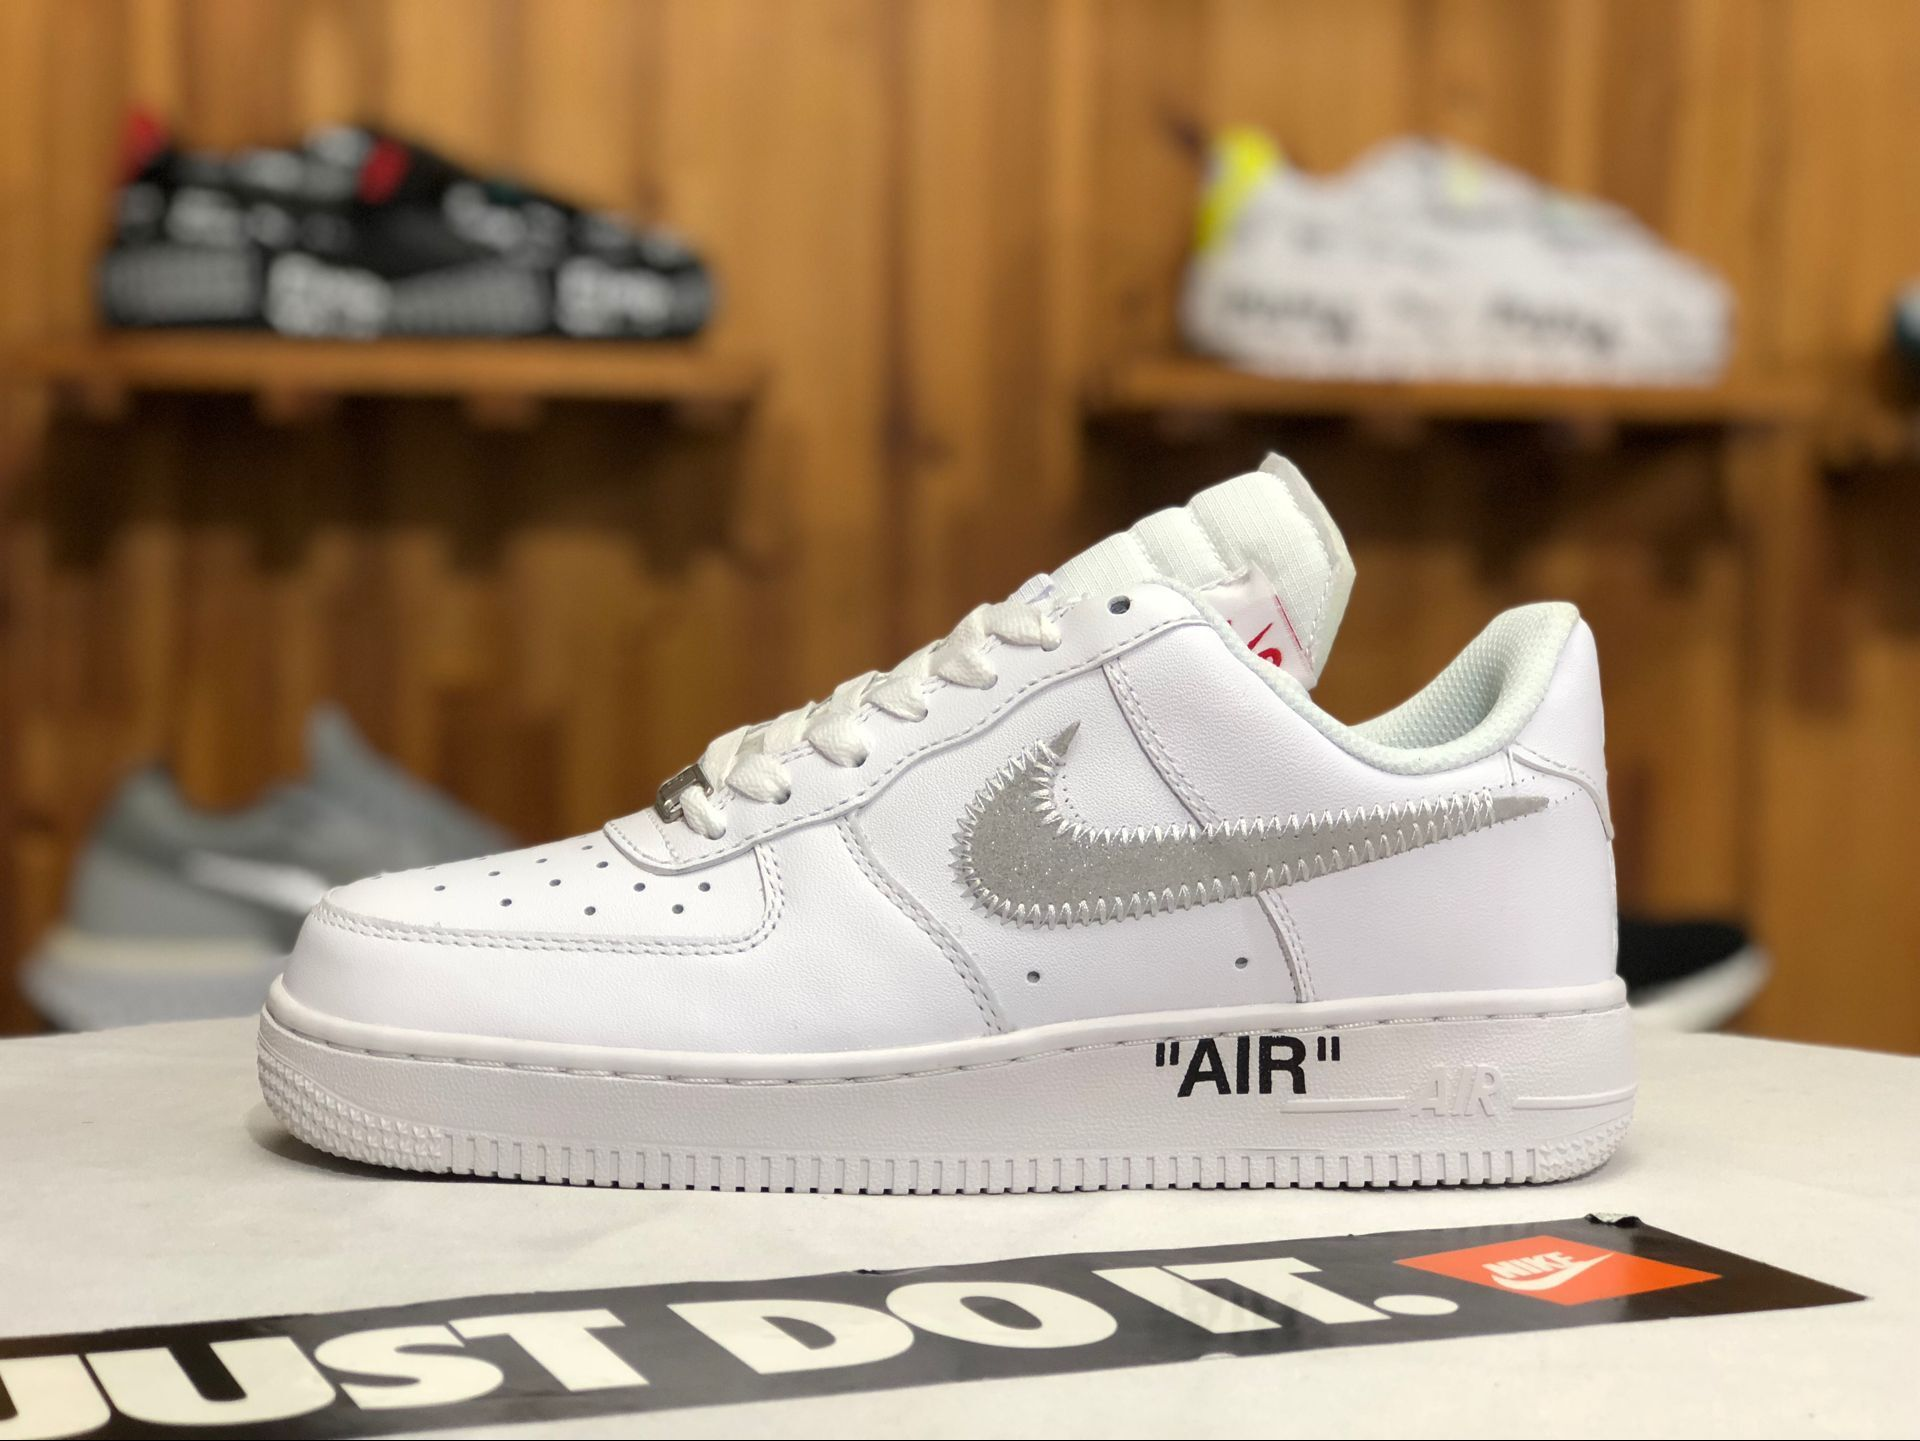 679ce77e349 Buy OFF-WHITE x Nike Air Force 1 Low White Black-Varsity Red Silver ...